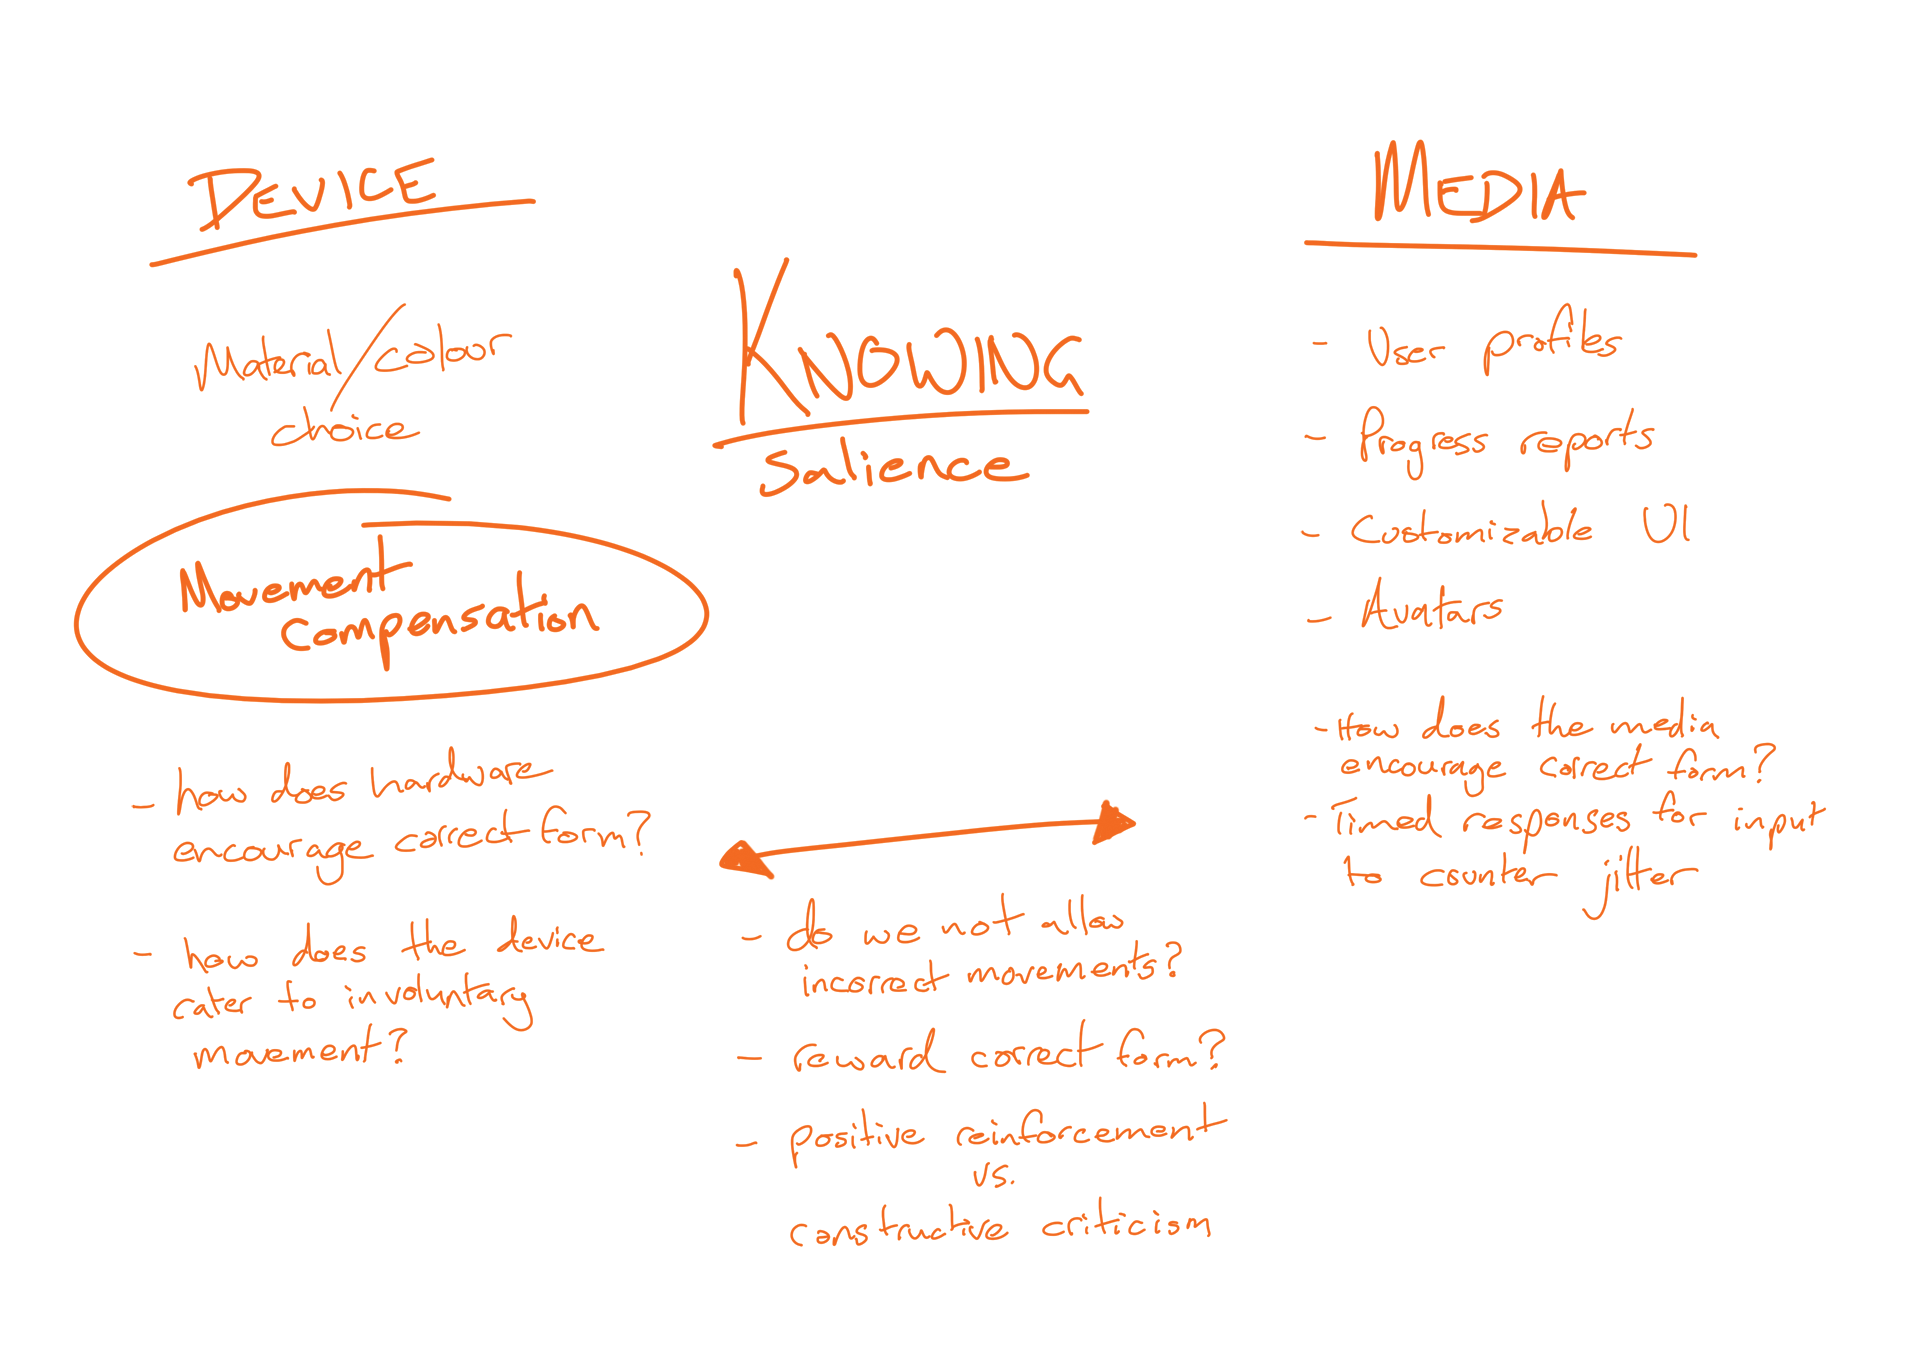 Figure 4.5 - Knowing